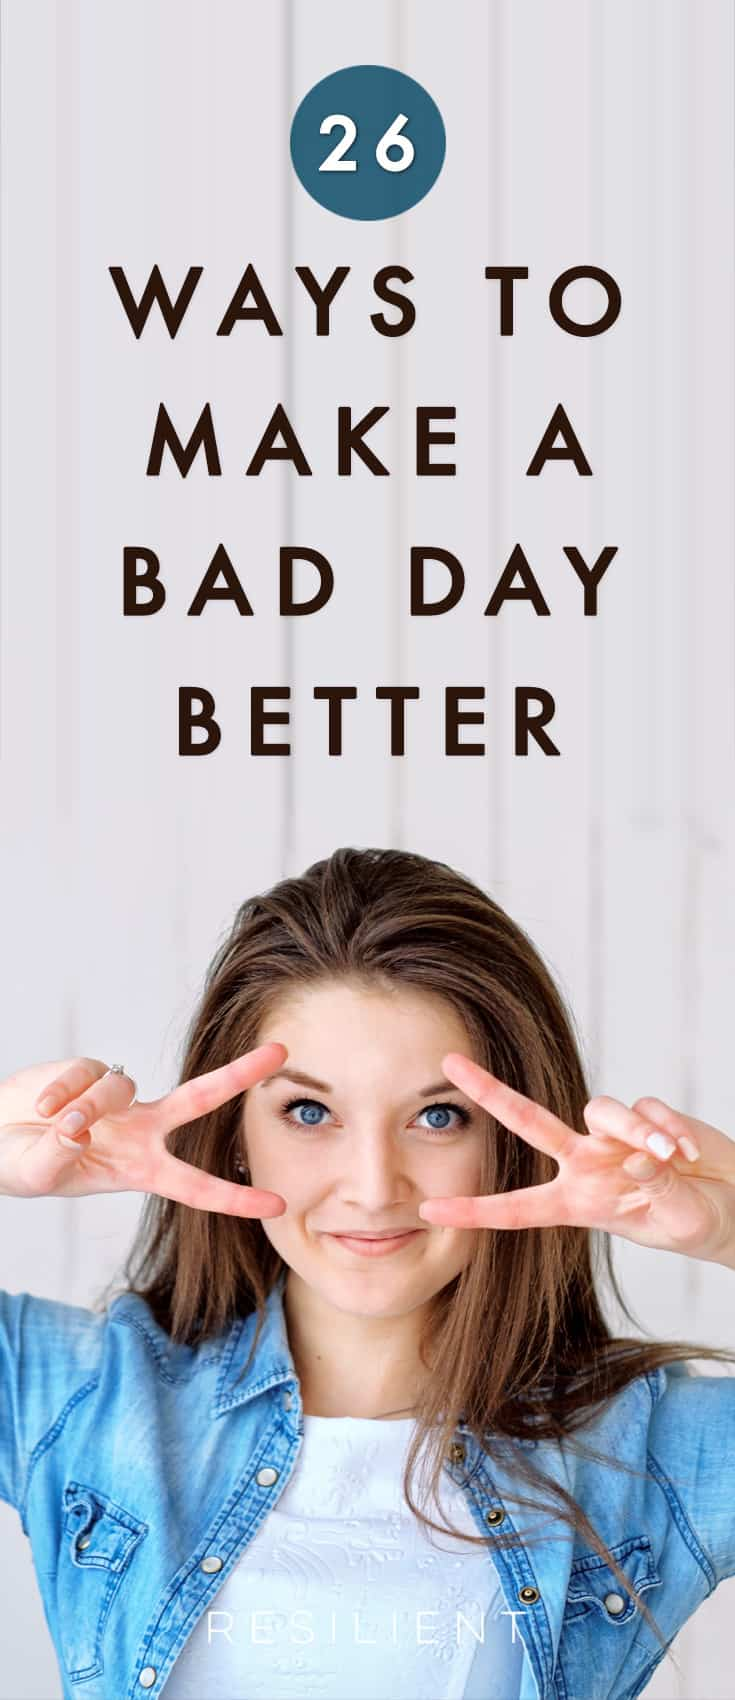 Sometimes we have bad days. In that case, just whip out this handy list of 26 things to do when you're having a bad day. It's like a bad day toolbox that you can take anywhere. :)